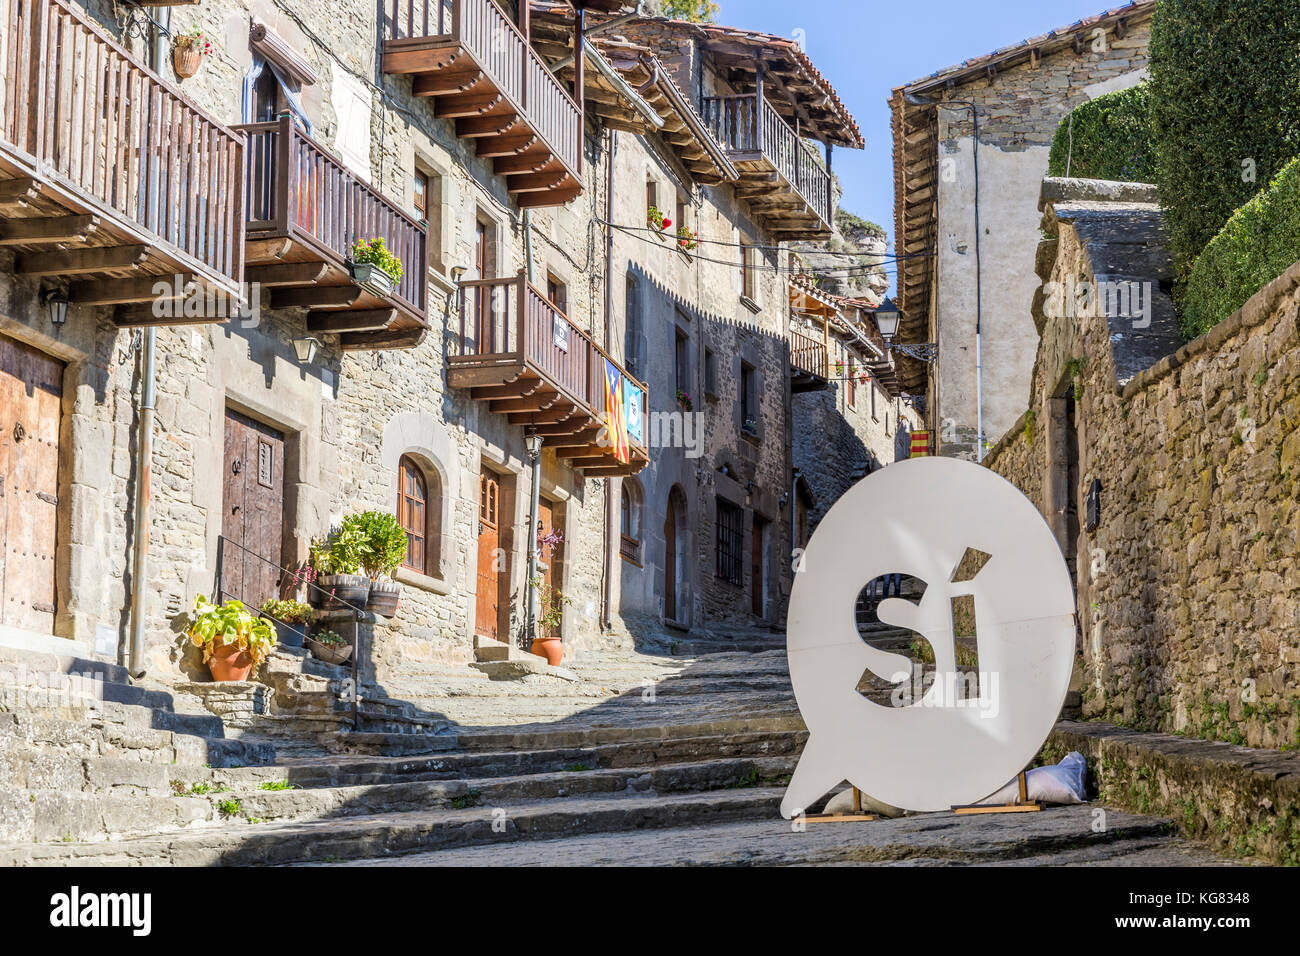 RUPIT, SPAIN - OCTOBER 29, 2017: The Catalan National Assembly's pro-independence 'Si' logo on the streets - Stock Image